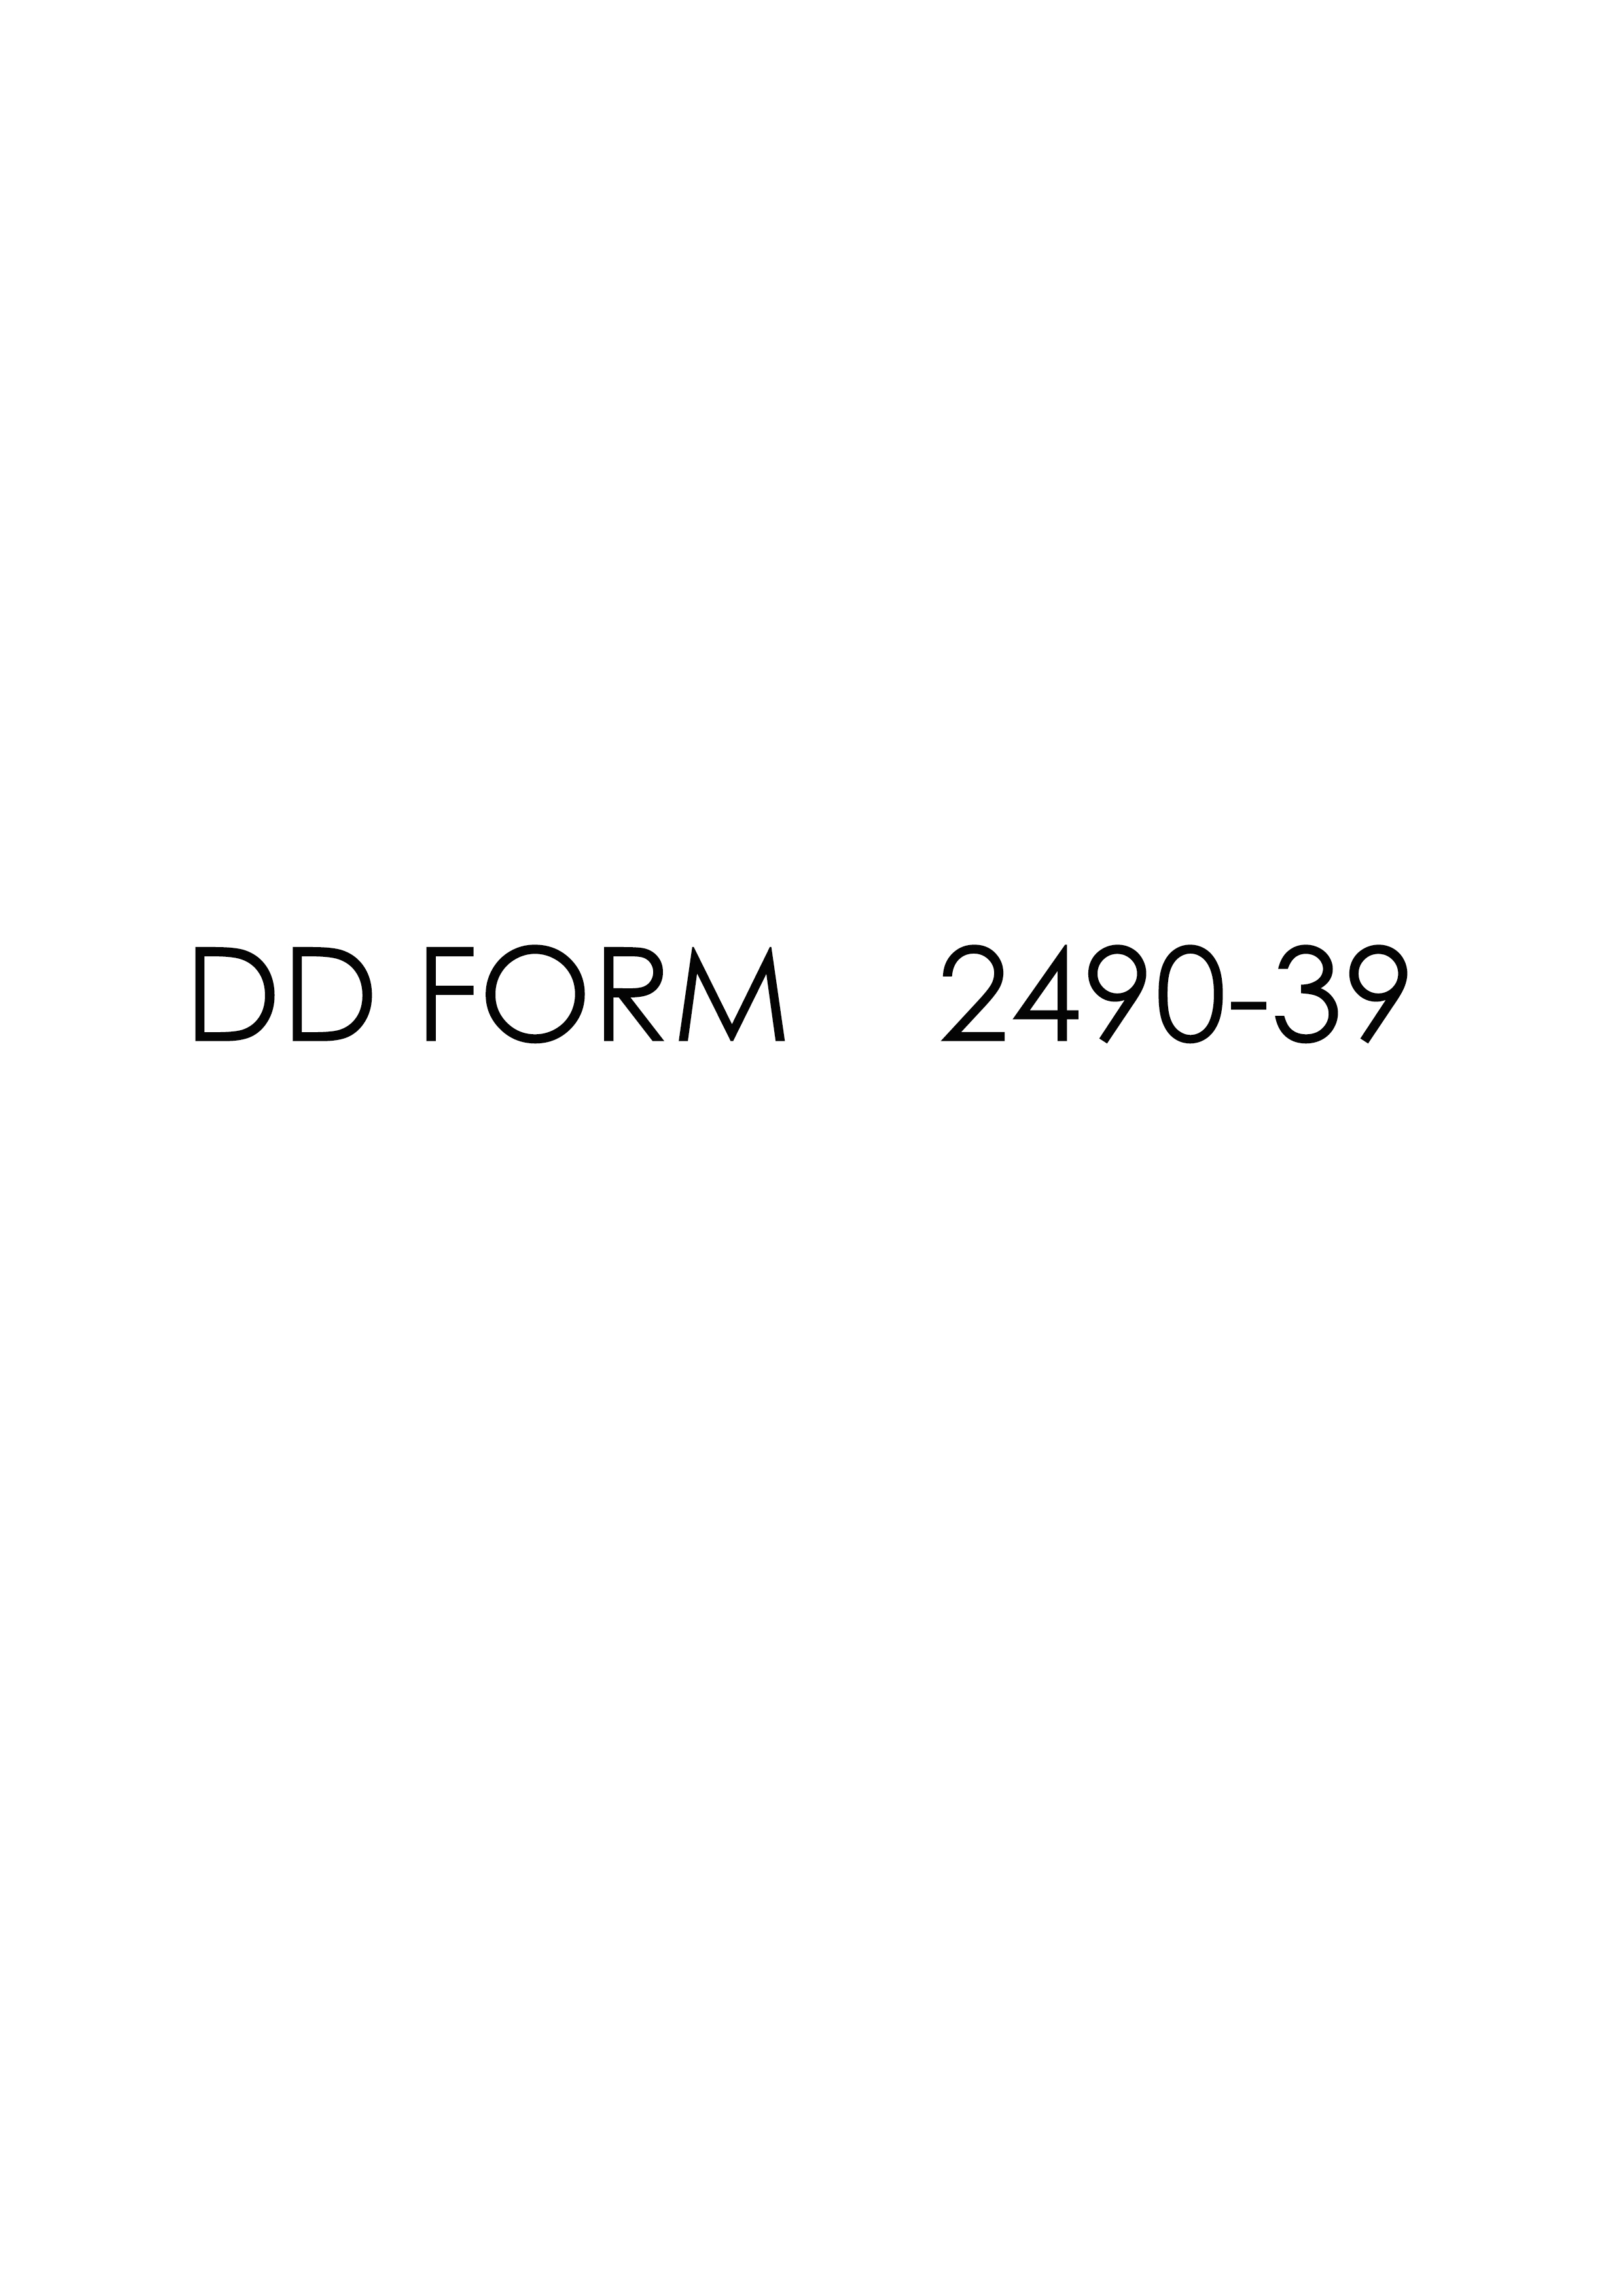 Download Fillable Dd Form 39